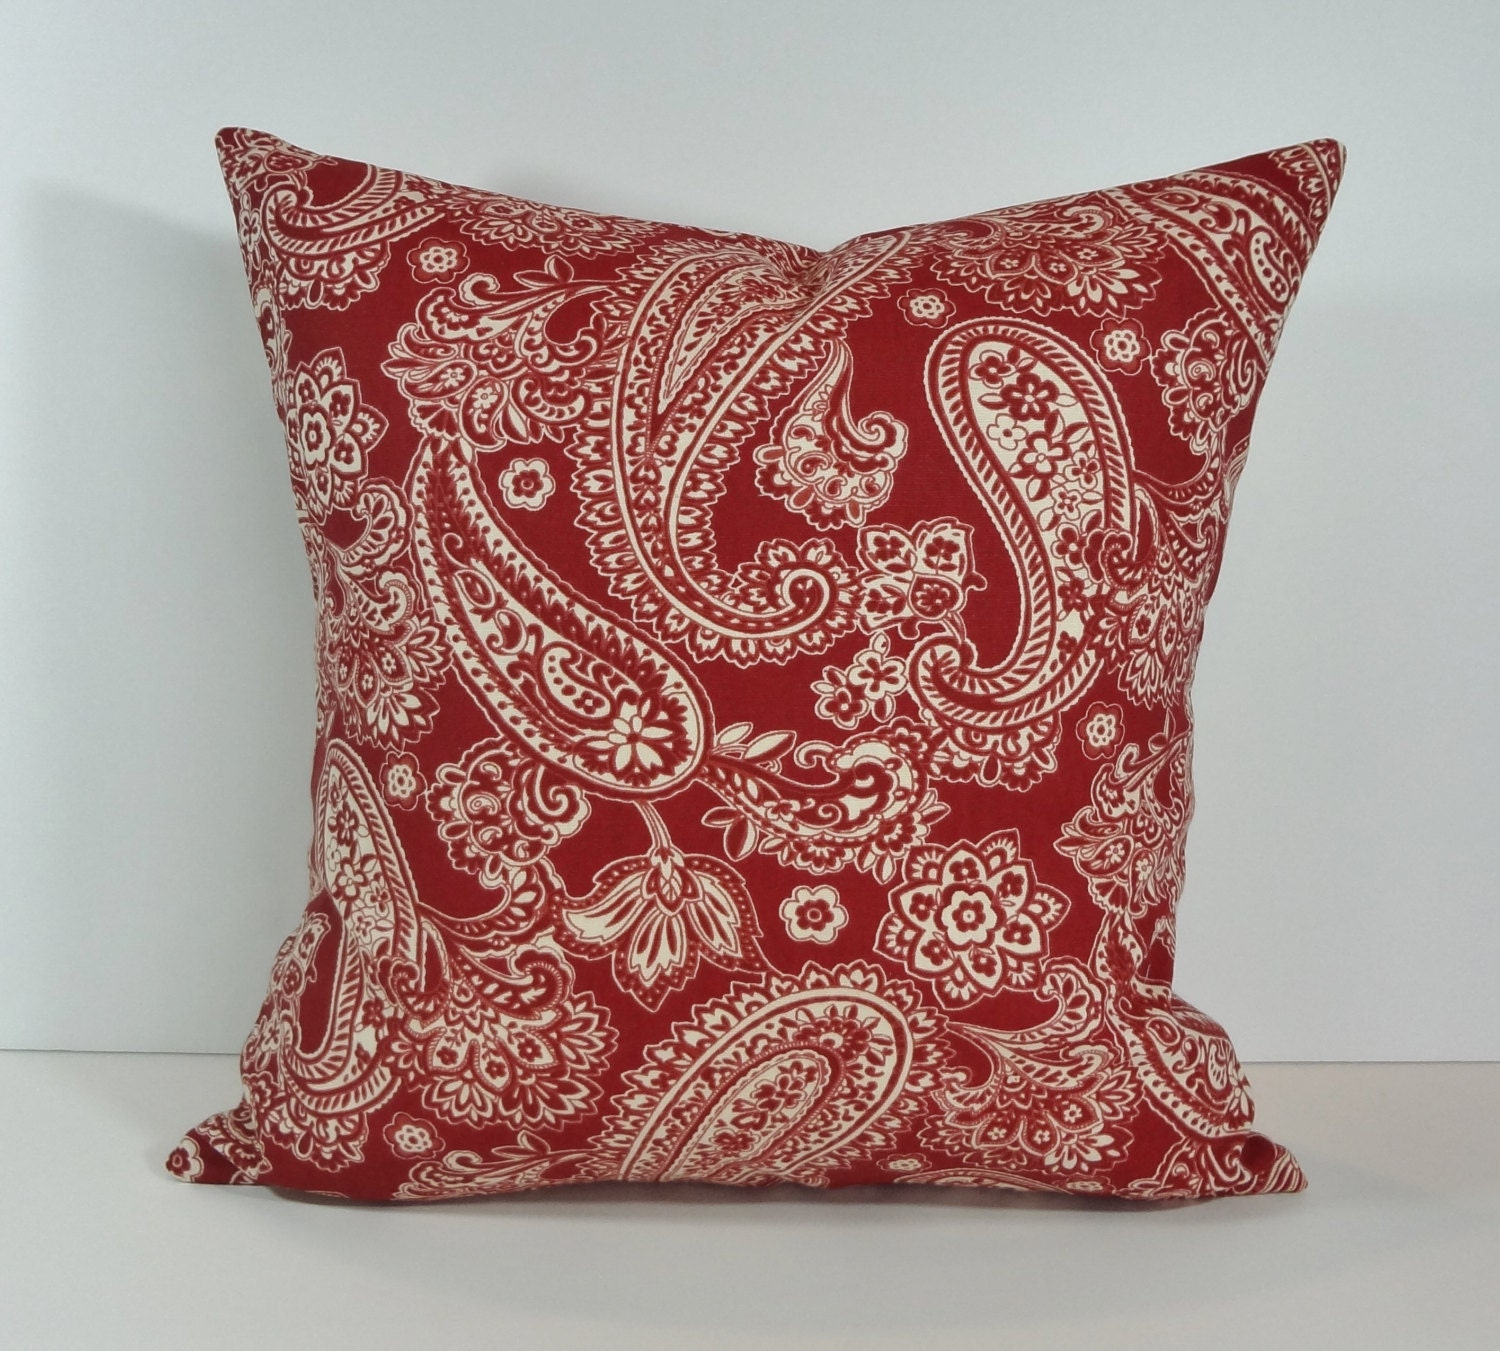 cranberry red paisley decorative pillow cover 18 x 18. Black Bedroom Furniture Sets. Home Design Ideas